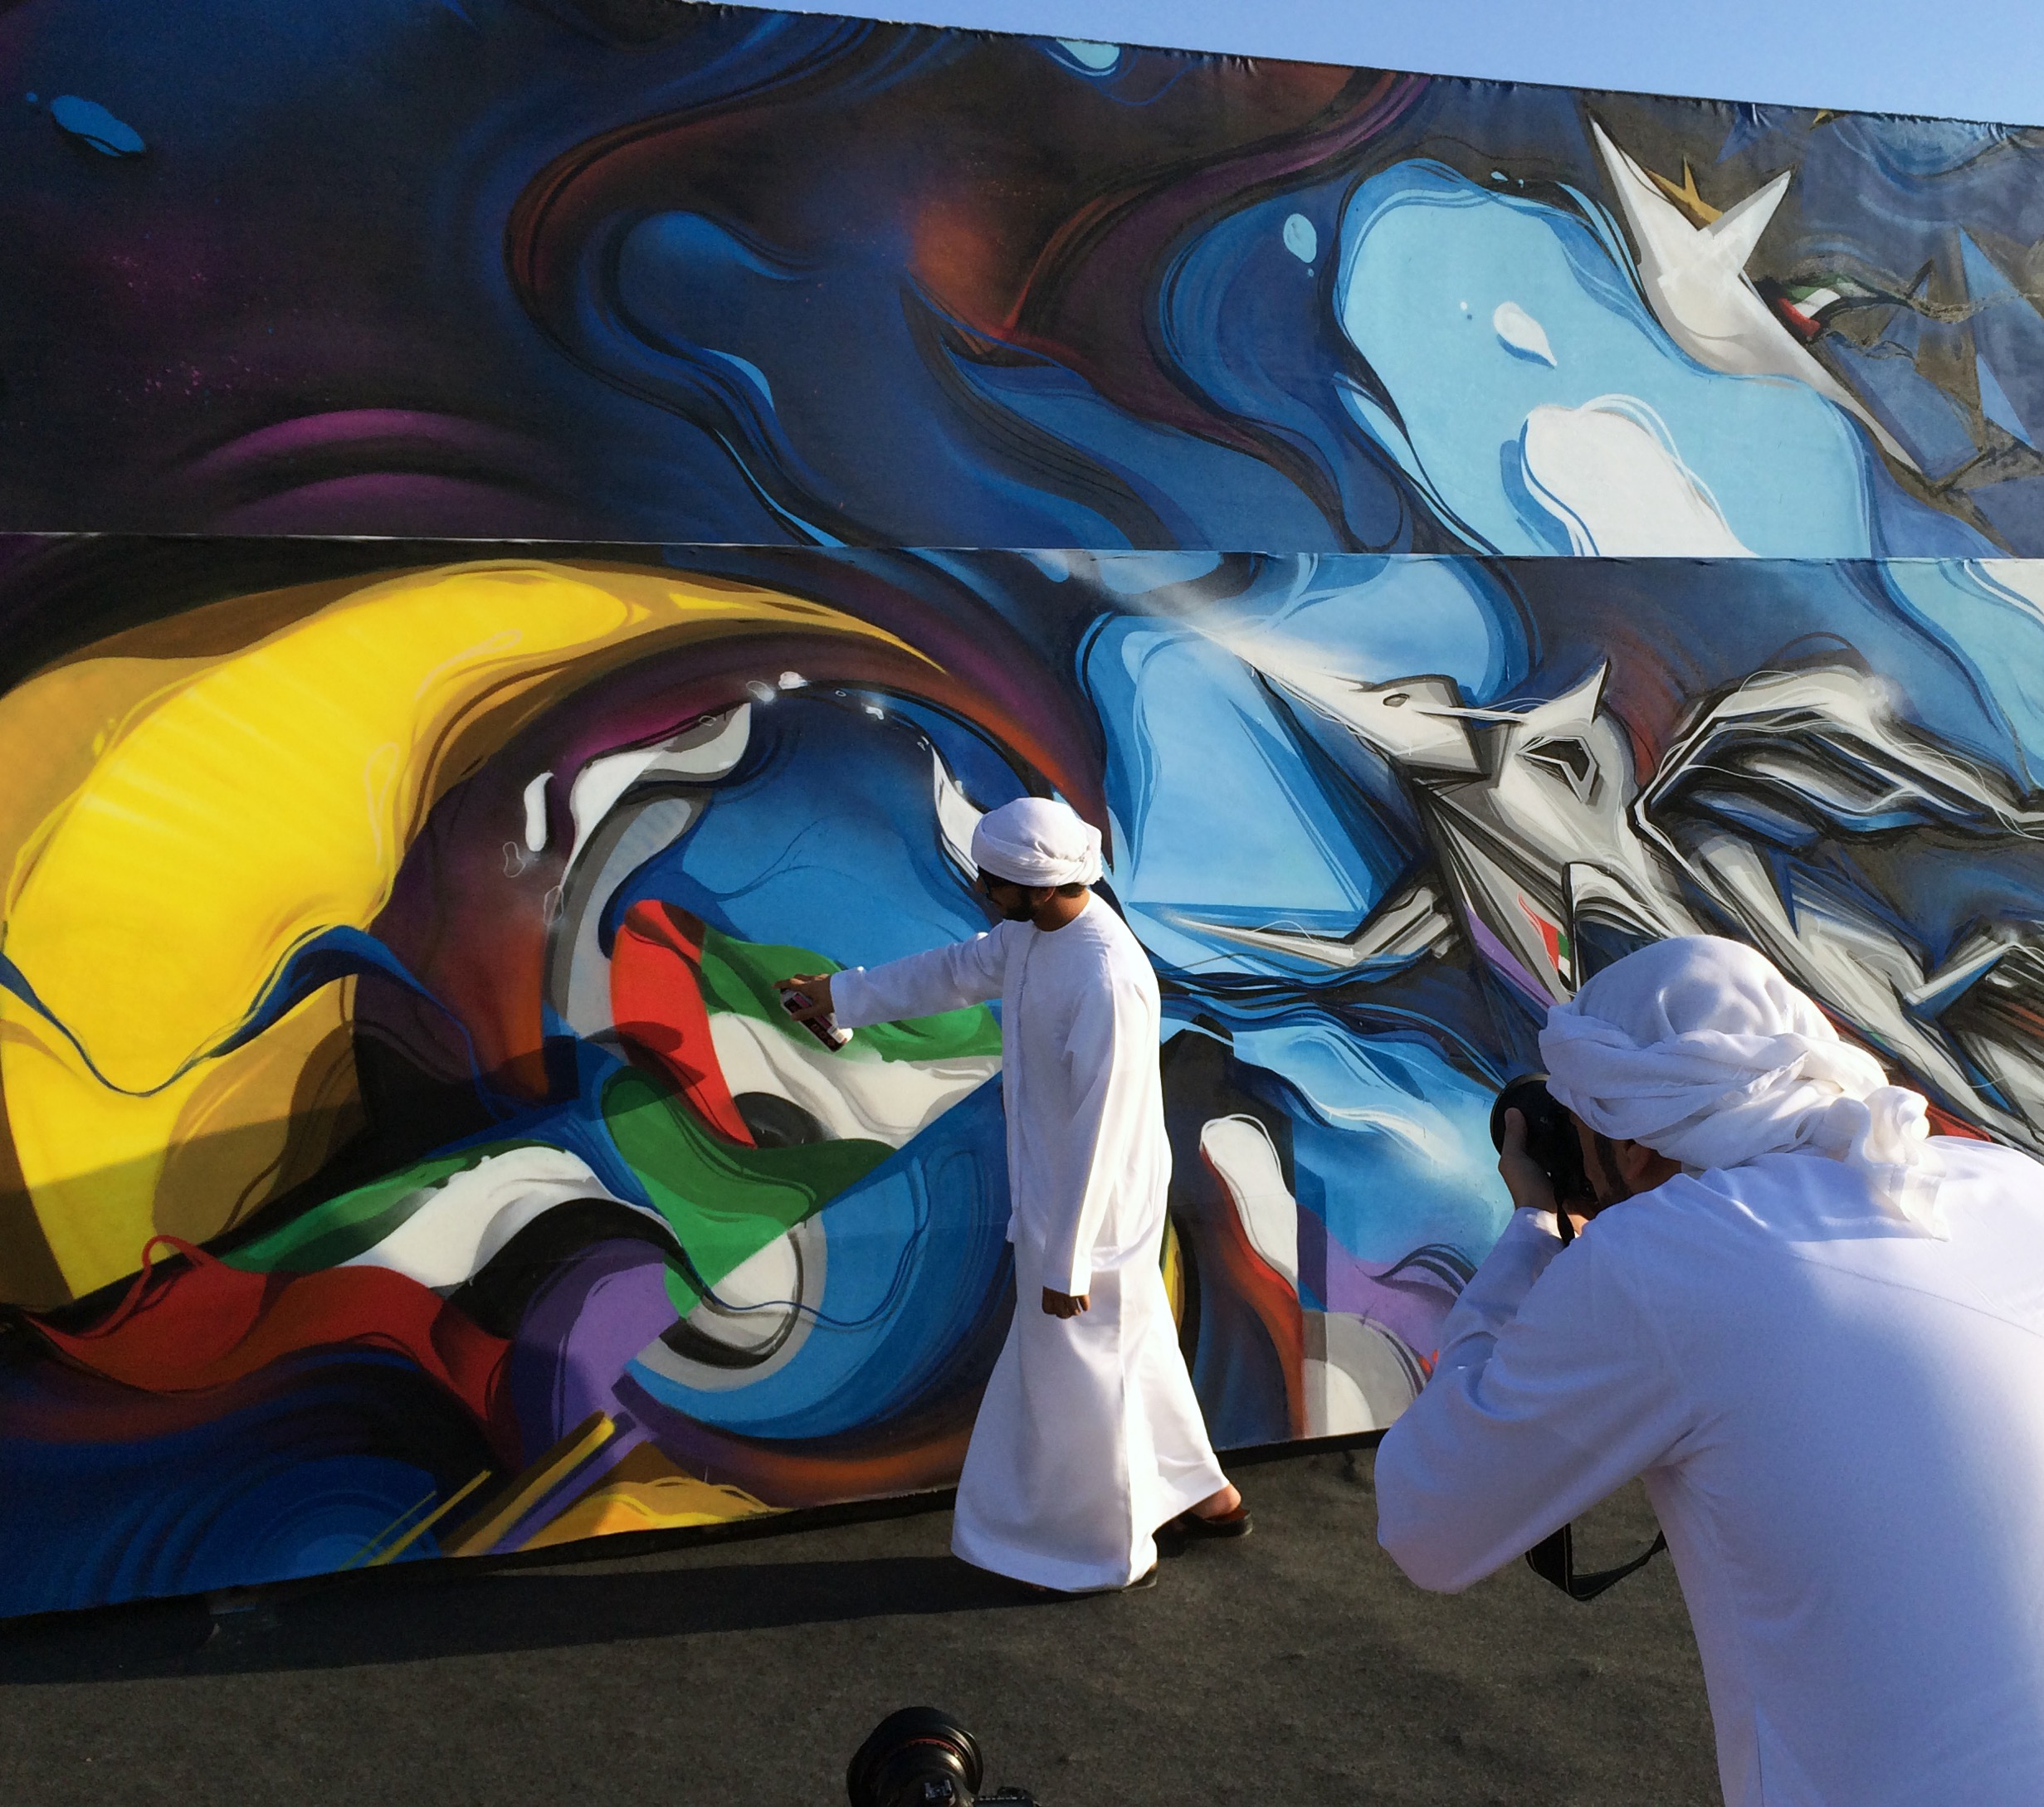 A work by Does - Dubai uae ironlak family 1